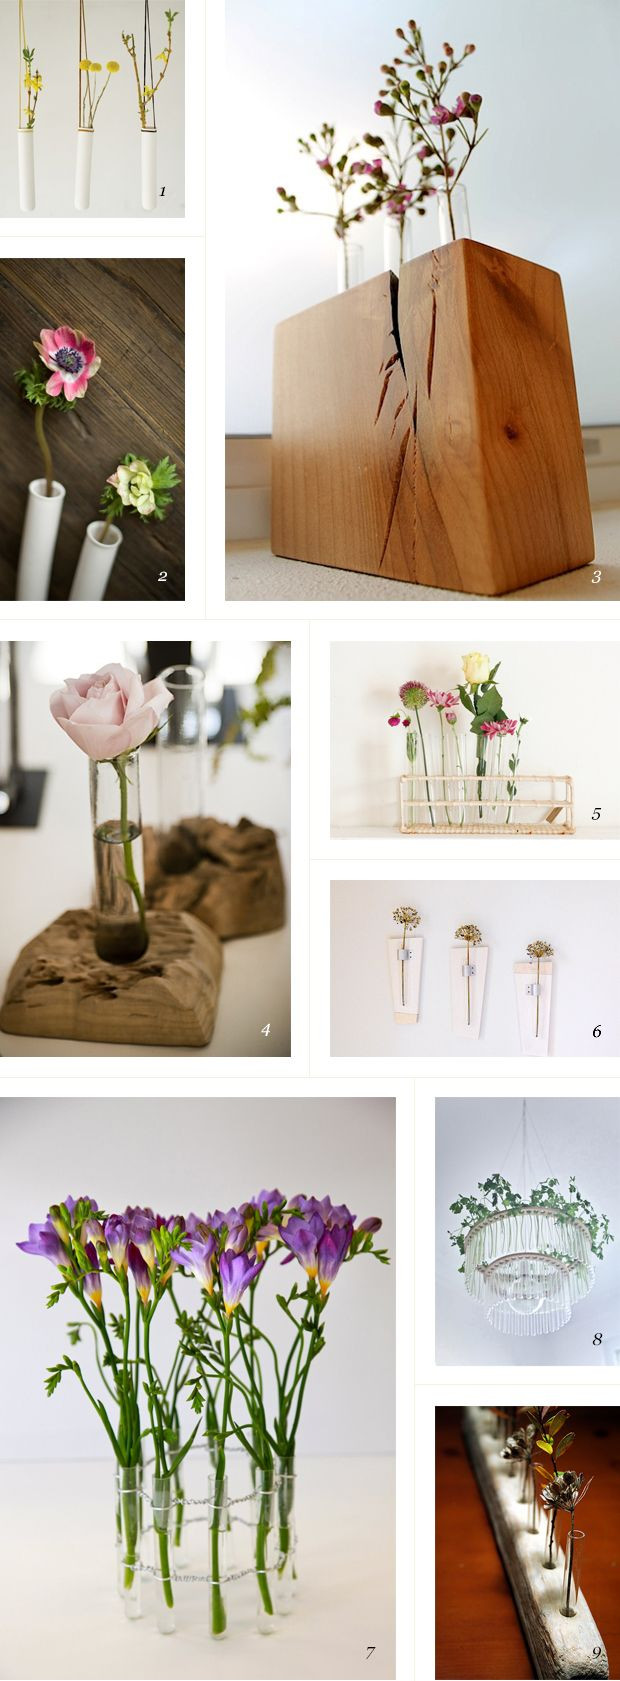 tree trunk flower vases of 71 best vases and candle holders images on pinterest ornaments throughout love these test tube vases could easily make one with a blog of wood and